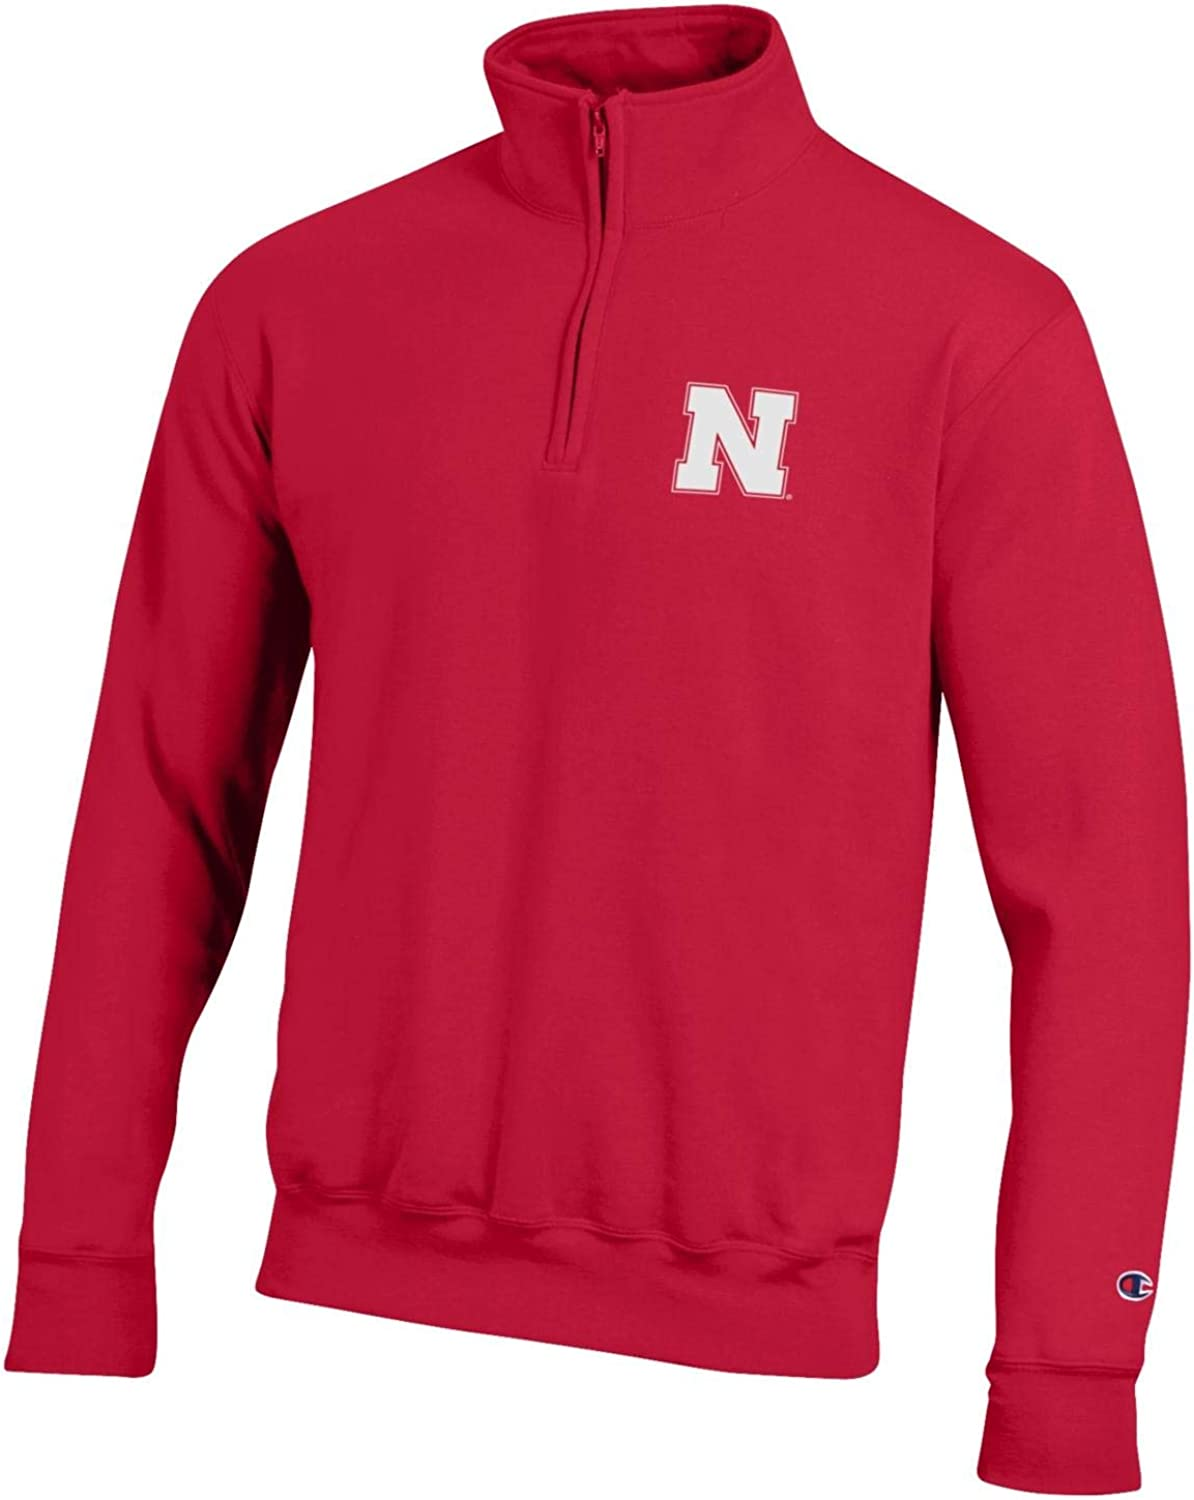 Virginia Beach Mall Champion NCAA Men's Powerblend Cotton-Poly 1 4 Pullover Zip Time sale